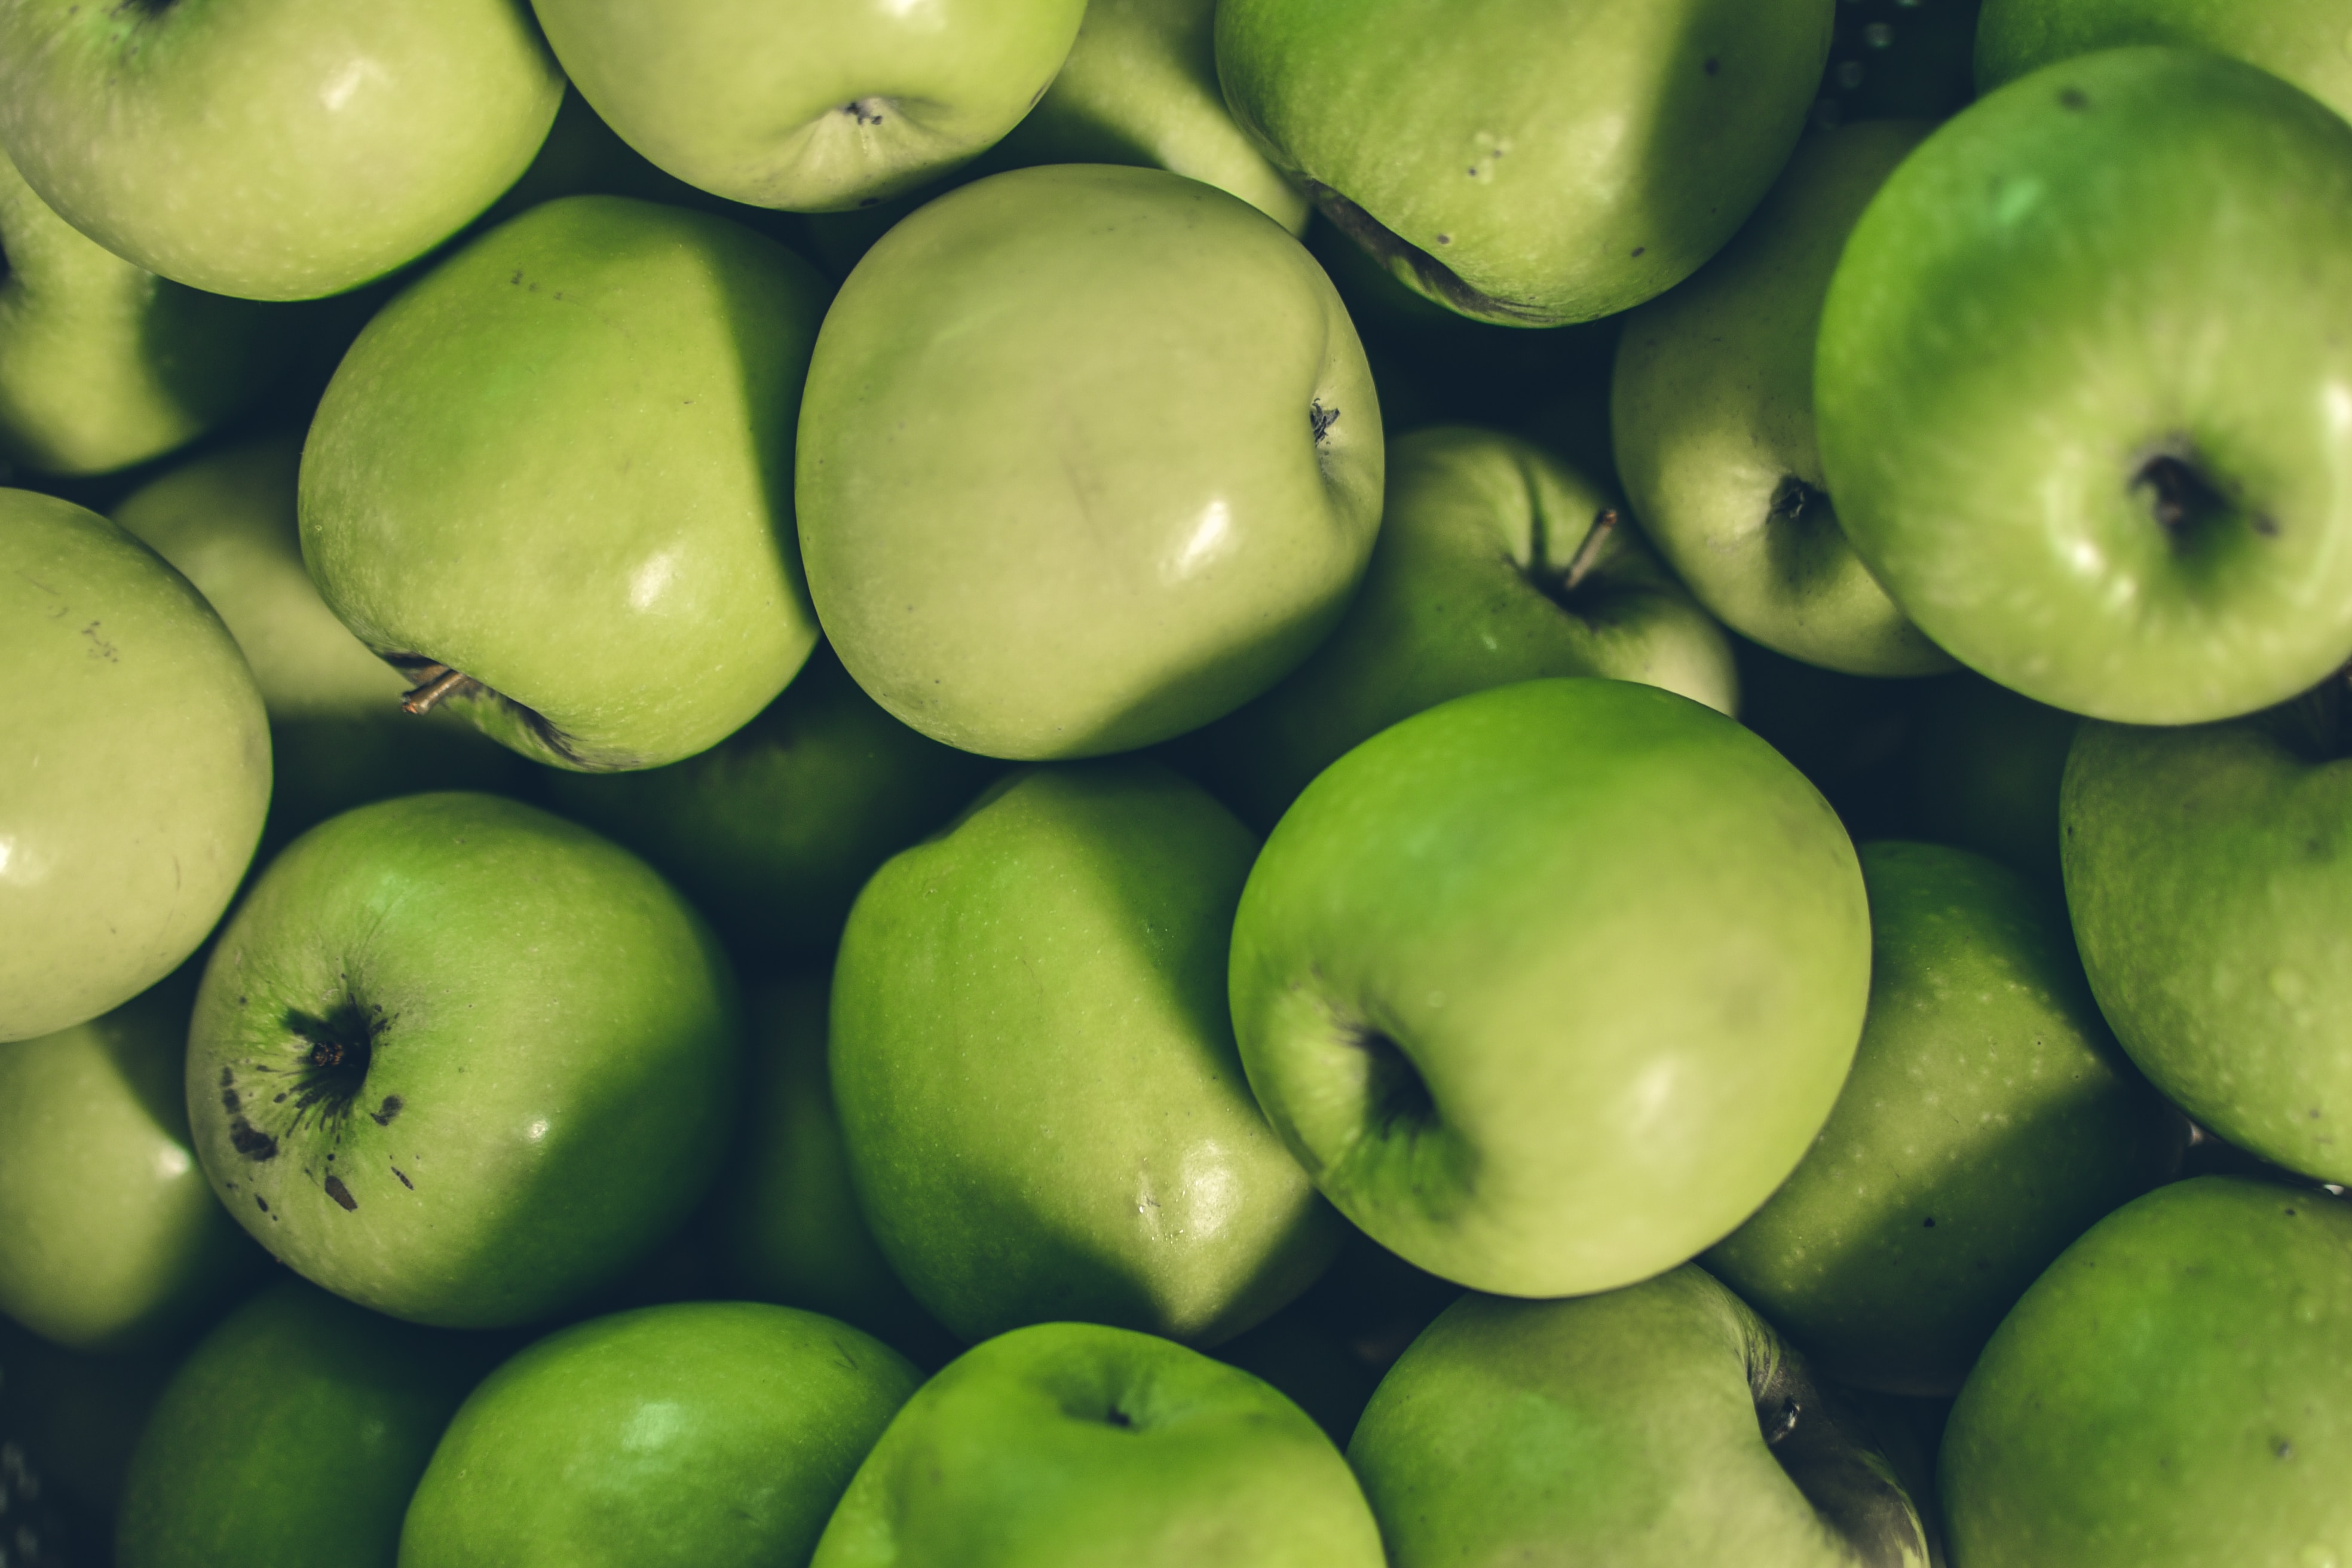 green apples, free indian travel and stock photos